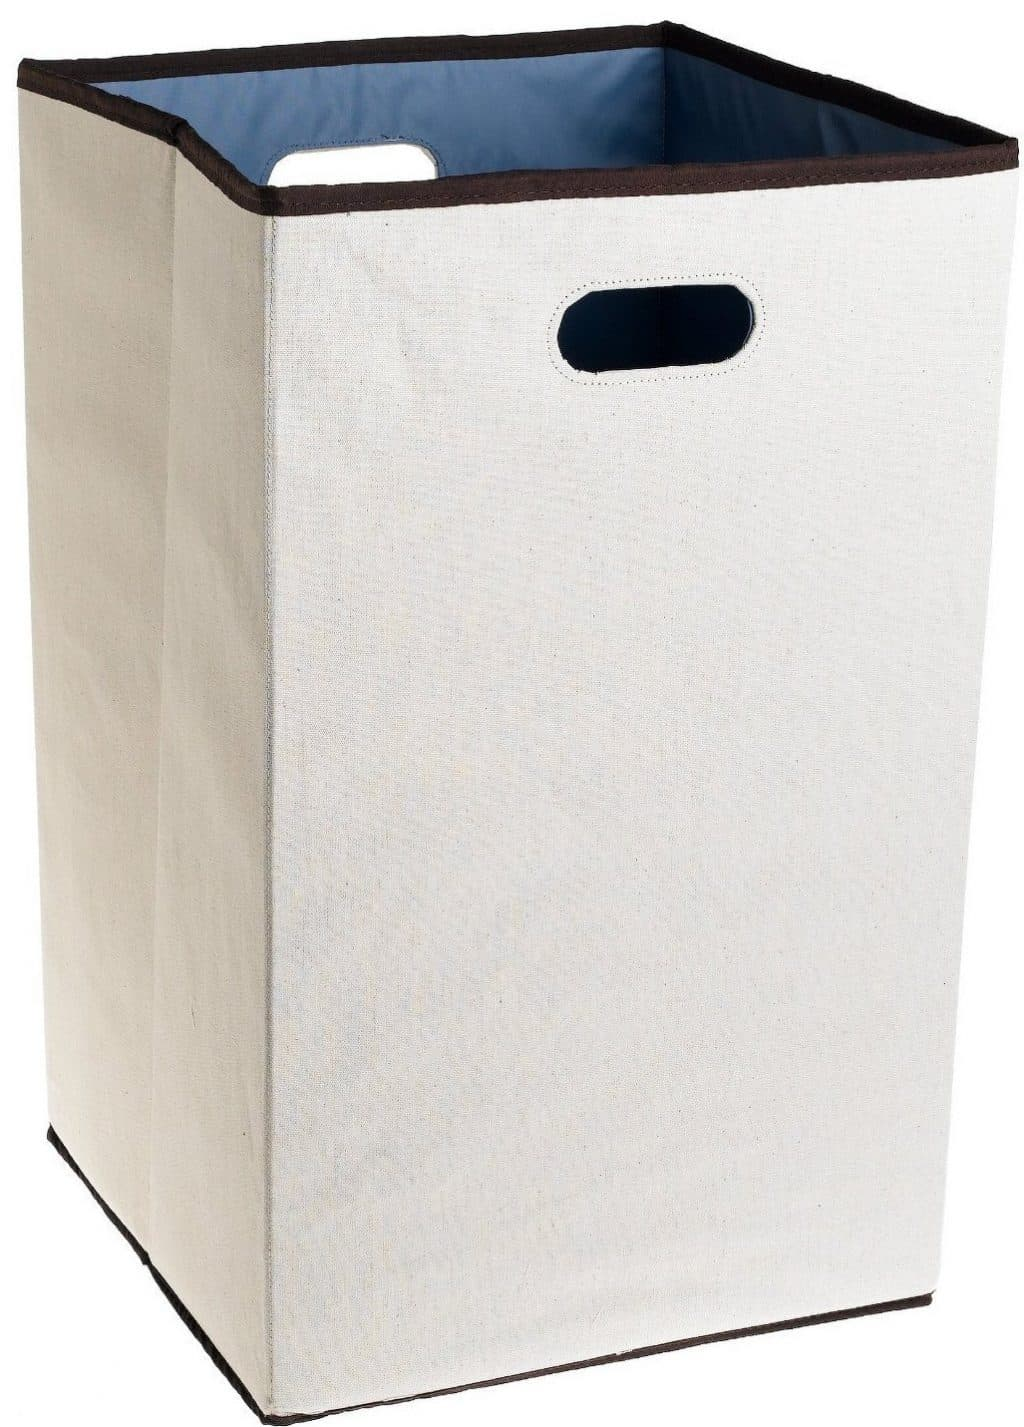 Rubbermaid Configurations Custom Closet Folding Laundry Hamper